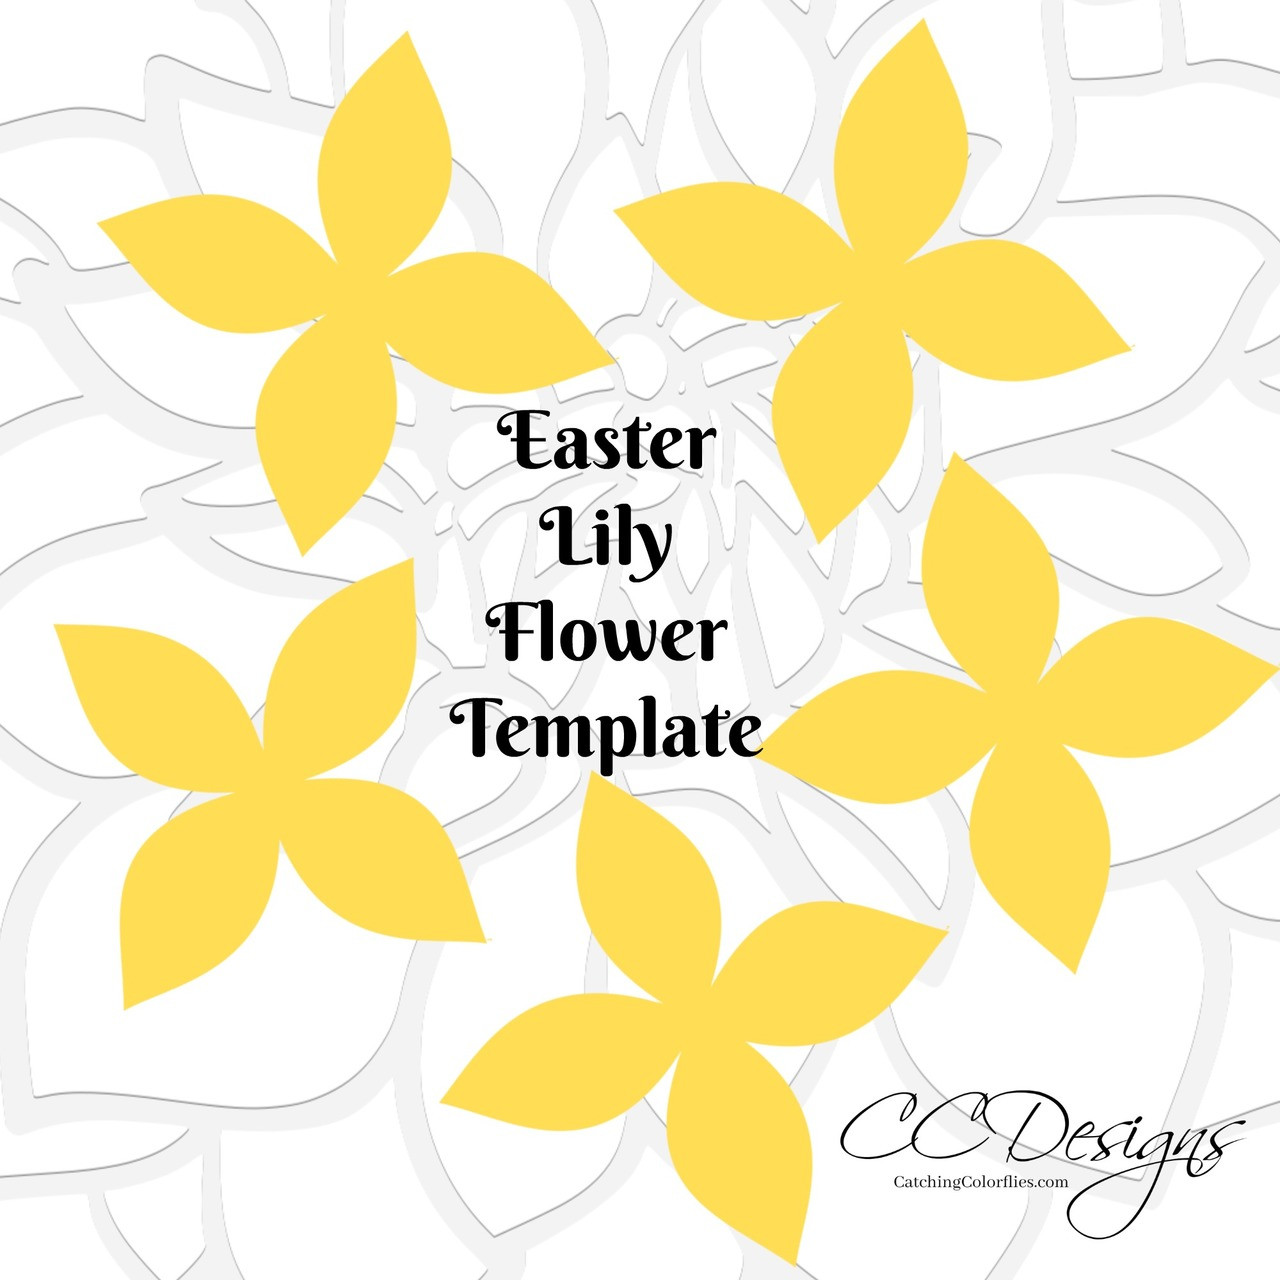 Easter Lily Flower Templates - Catching Colorlfies